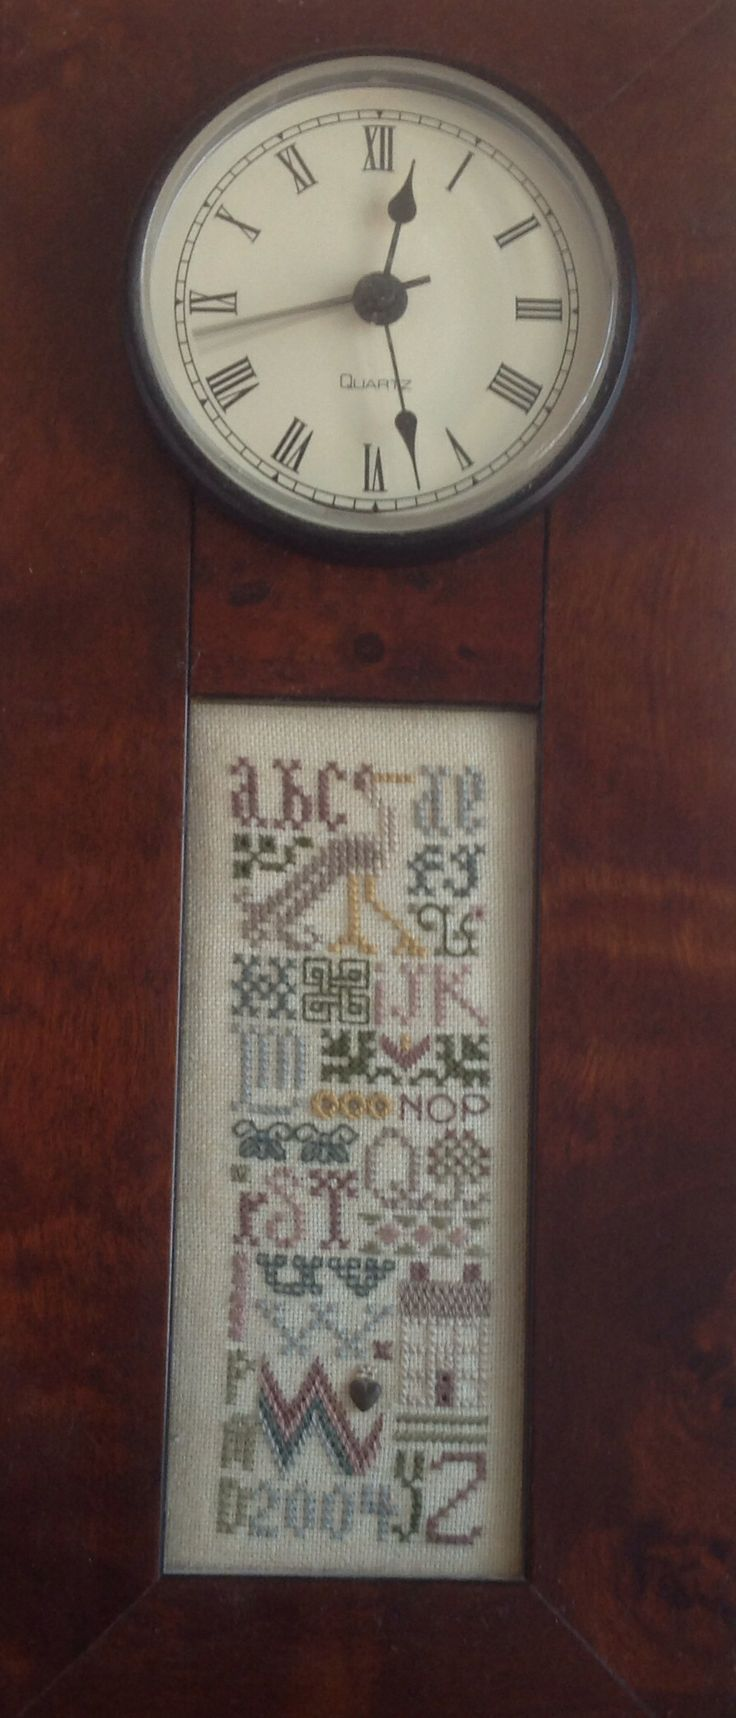 Clock, drawn thread design, stitched by Penelope Darby